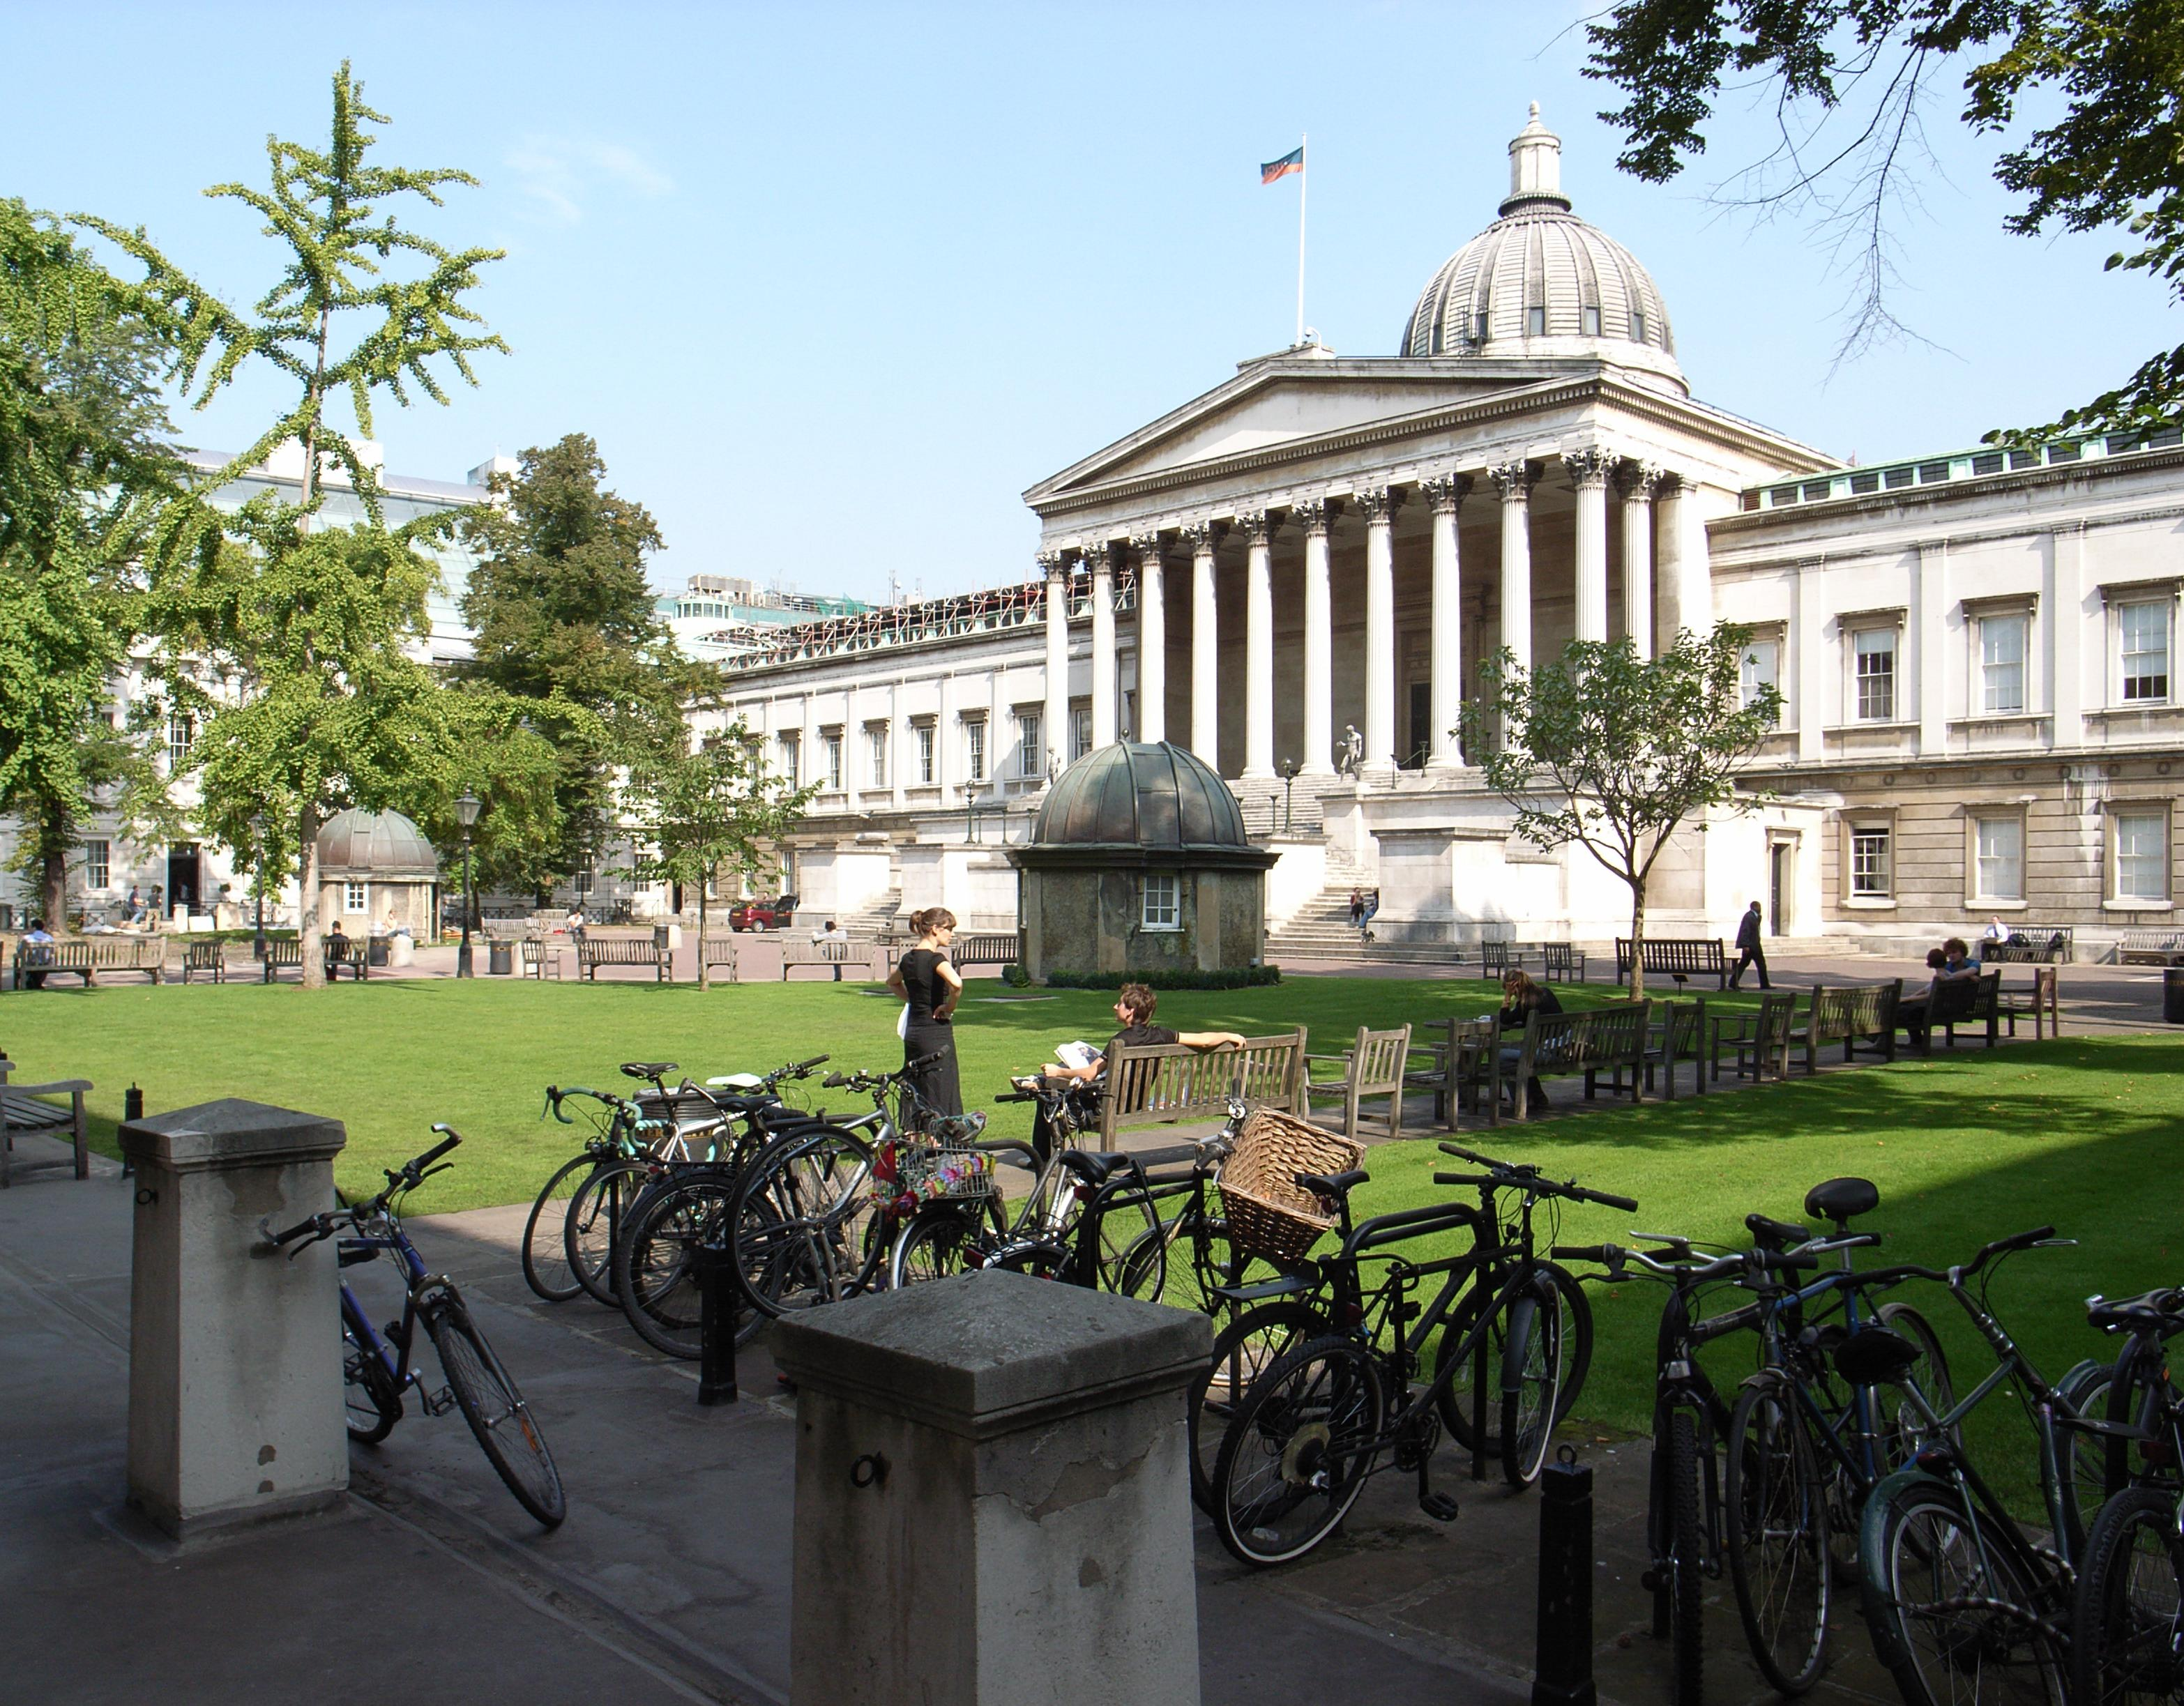 Đại học UCL (University College London)